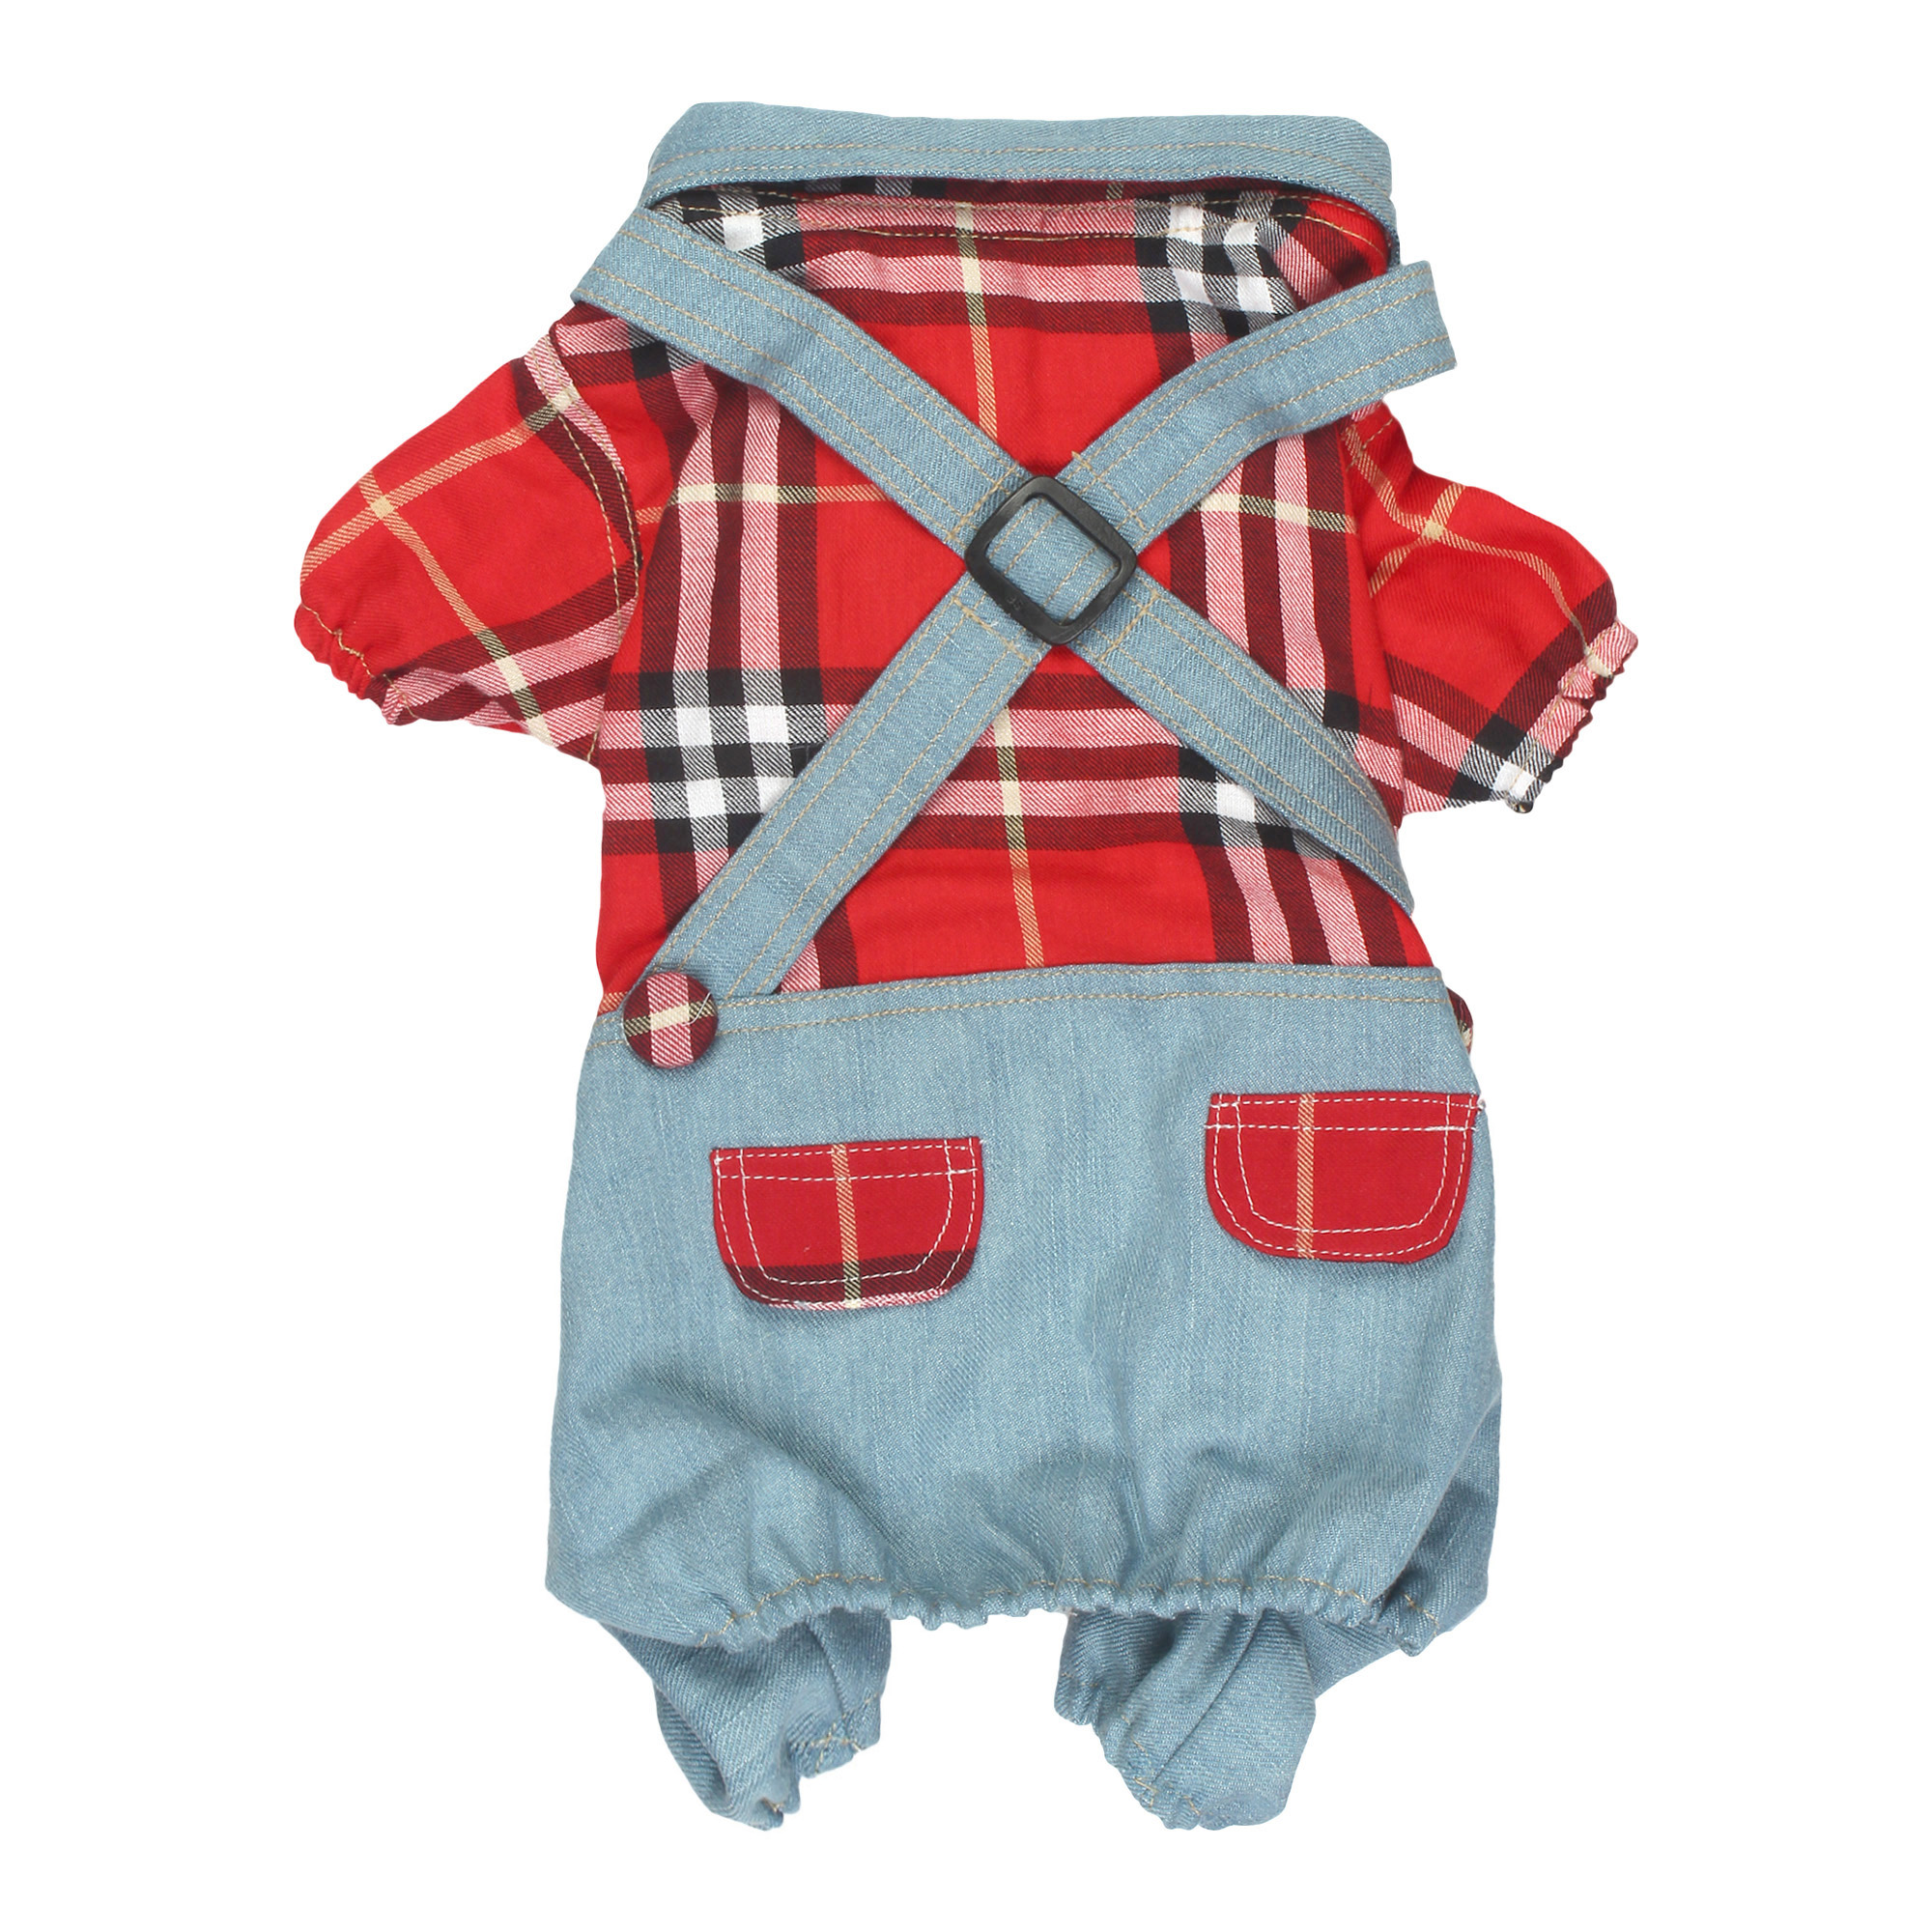 douge couture cool Outfits Red Plaid Shirts Overalls Pants Pet Clothes